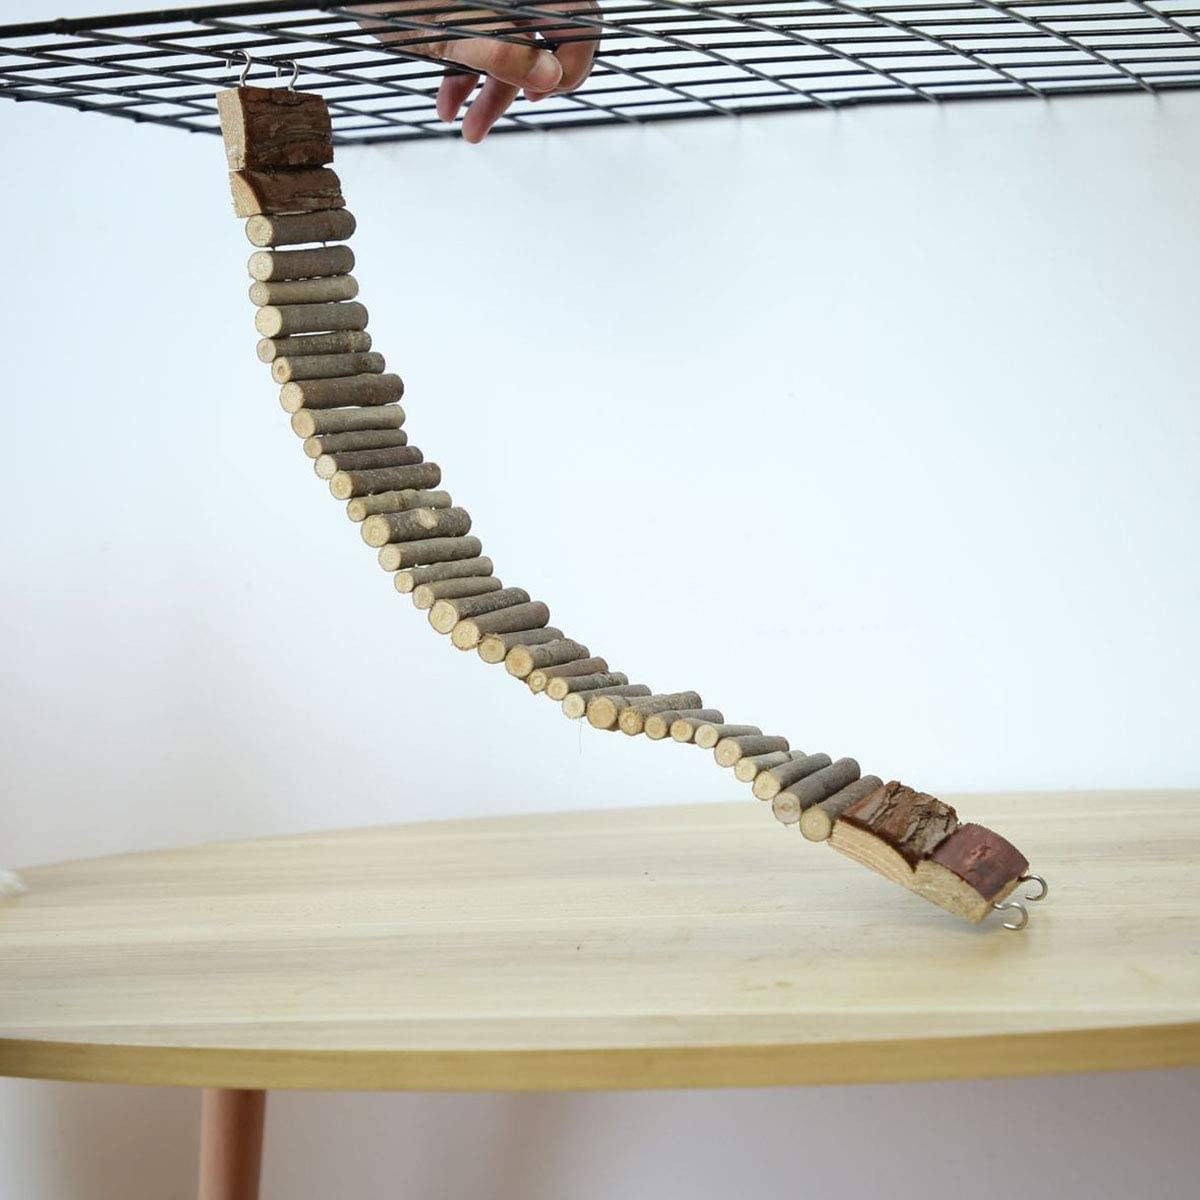 Haokaini Pet Wooden Climbing Ladder Flexible Fence Bridge for Hamster Bird Wooden Ladder Bridge Made with Raw Wood Easy Installation for Small Birds